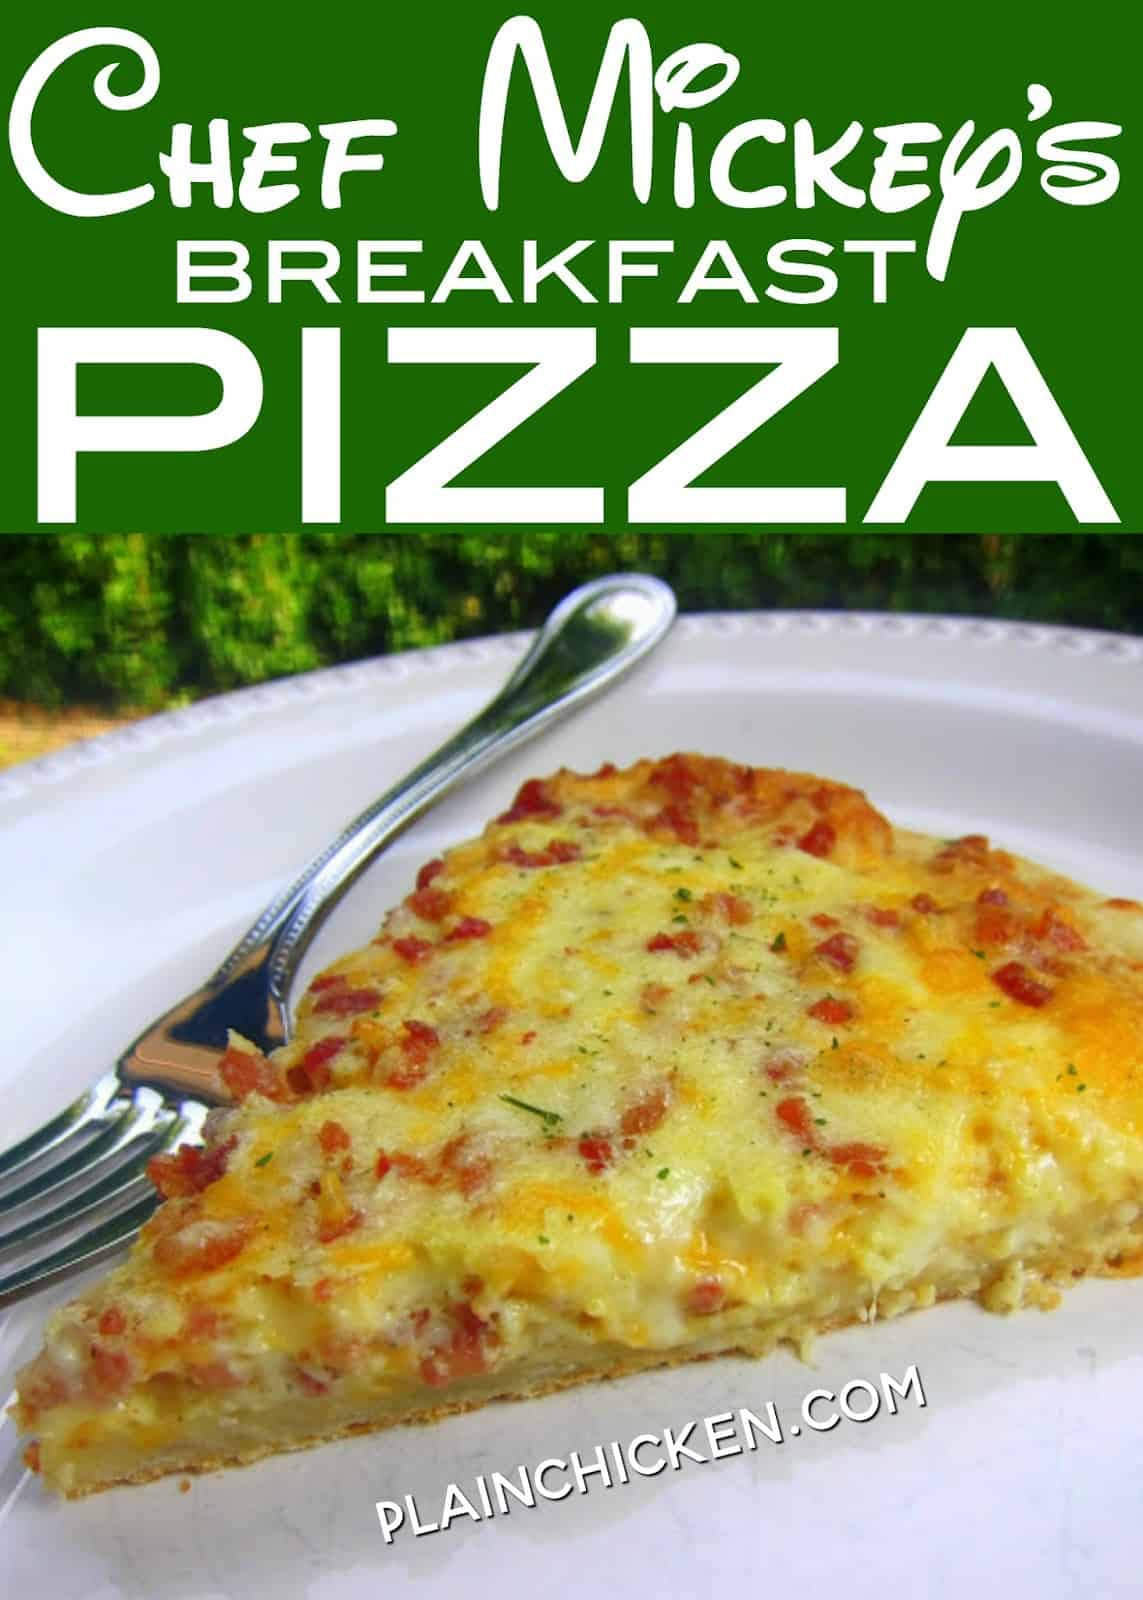 Chef Mickey's Breakfast Pizza - recipe from Walt Disney World - quick and easy breakfast pizza - ready in 10 minutes!! Premade pizza crust topped with eggs, heavy cream, mozzarella, provolone, cheddar and bacon. Great weekday breakfast! #disney #kidfriendly #breakfast